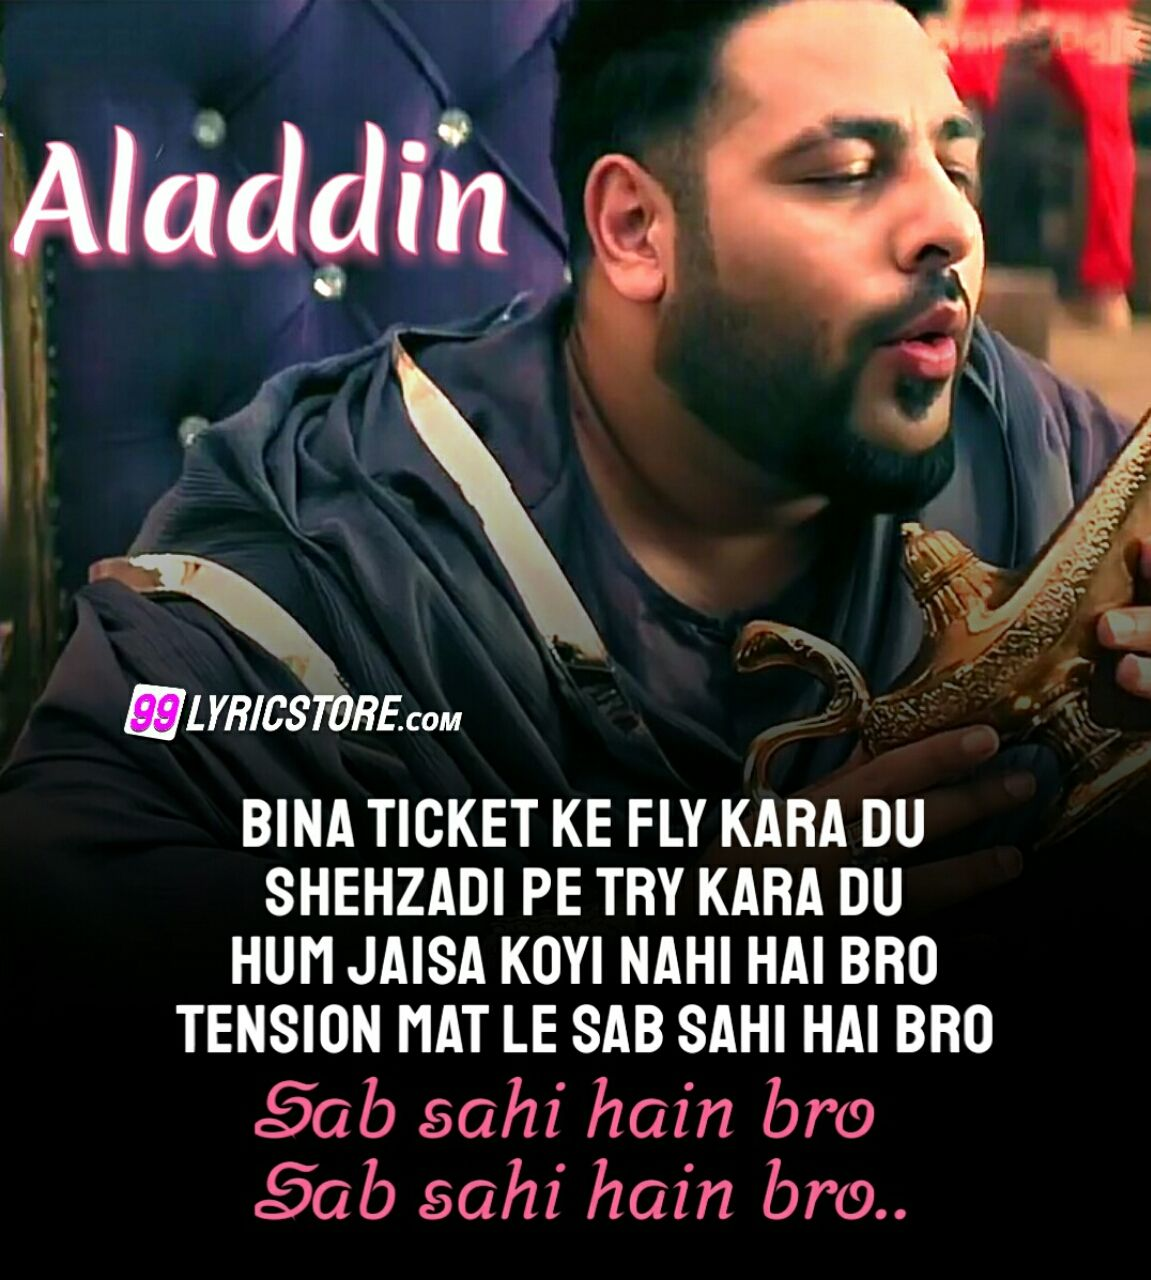 Sab Sahi Hain Bro Rap Song Created By badshah for movie aladdin